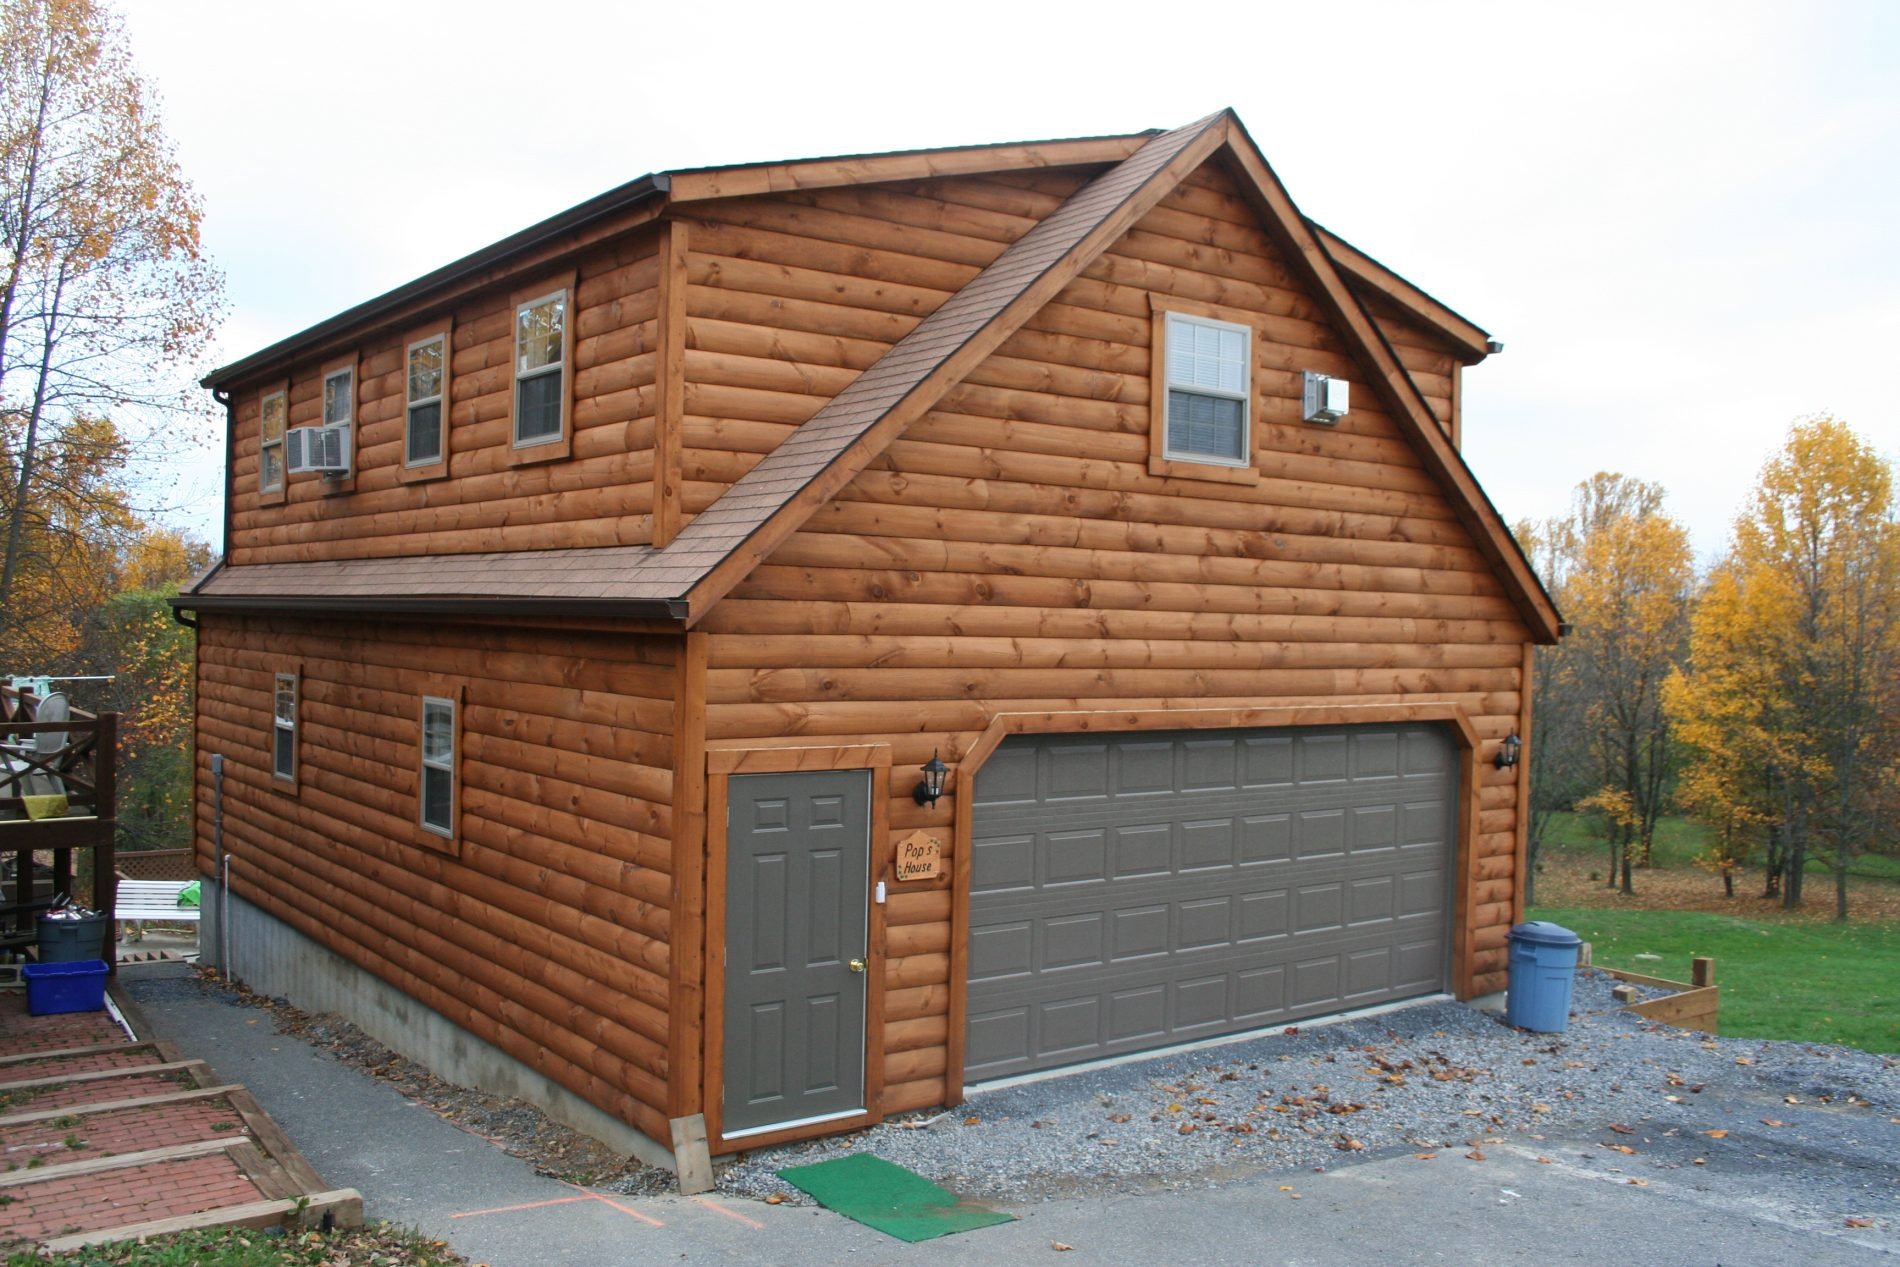 Custom garage builders prefab garages for sale zook cabins for Unique log cabin designs